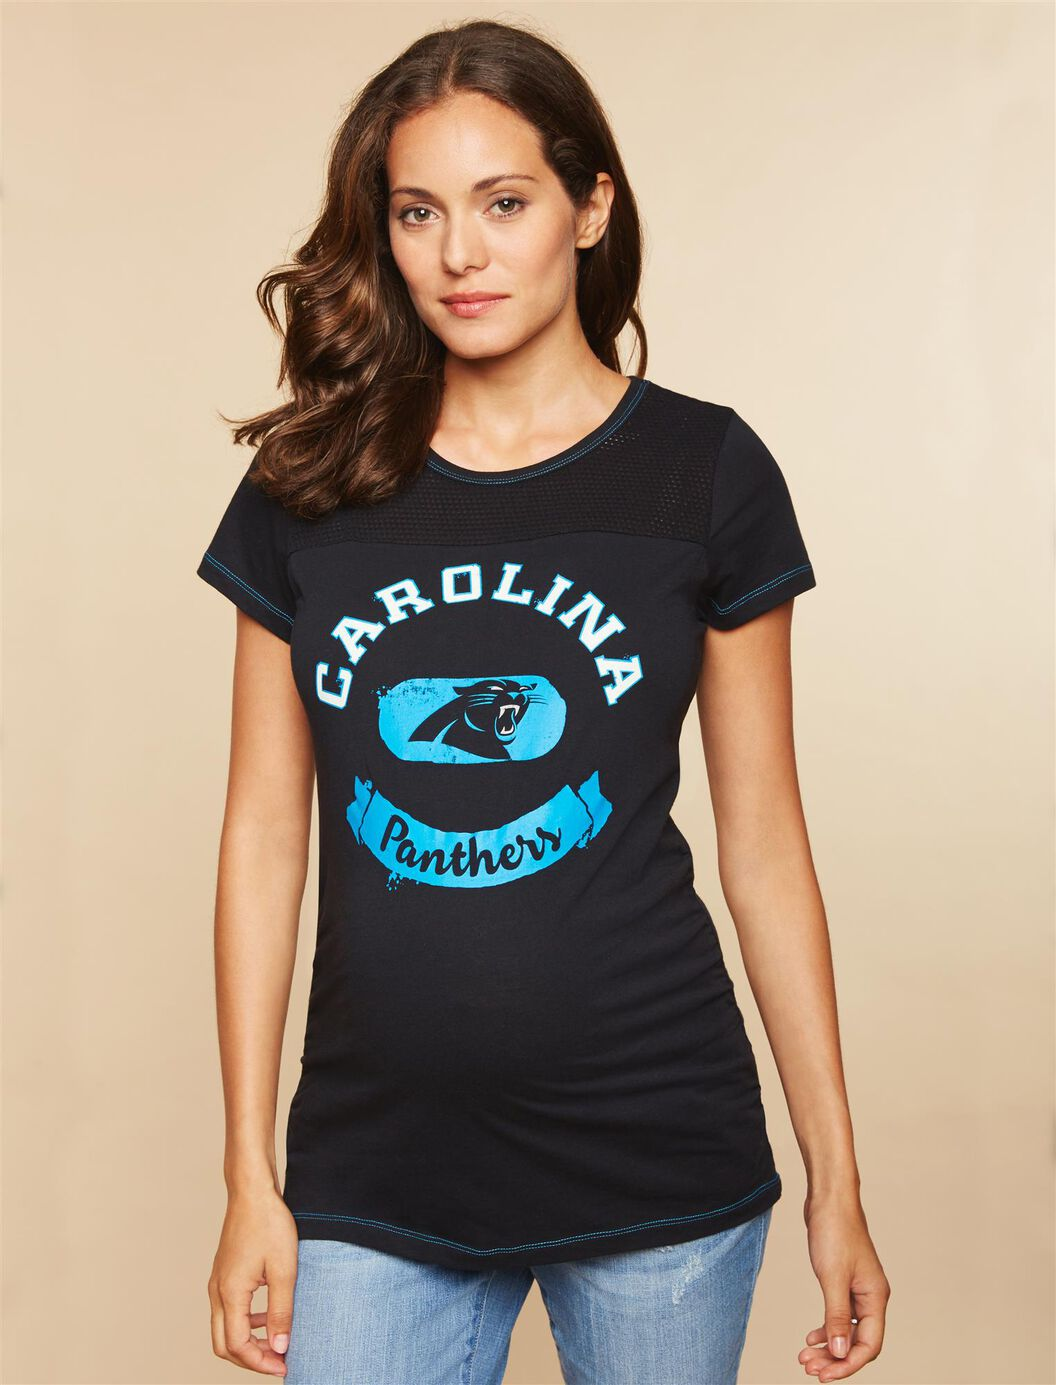 Carolina Panthers NFL Mesh Detail Maternity Tee at Motherhood Maternity in Victor, NY | Tuggl